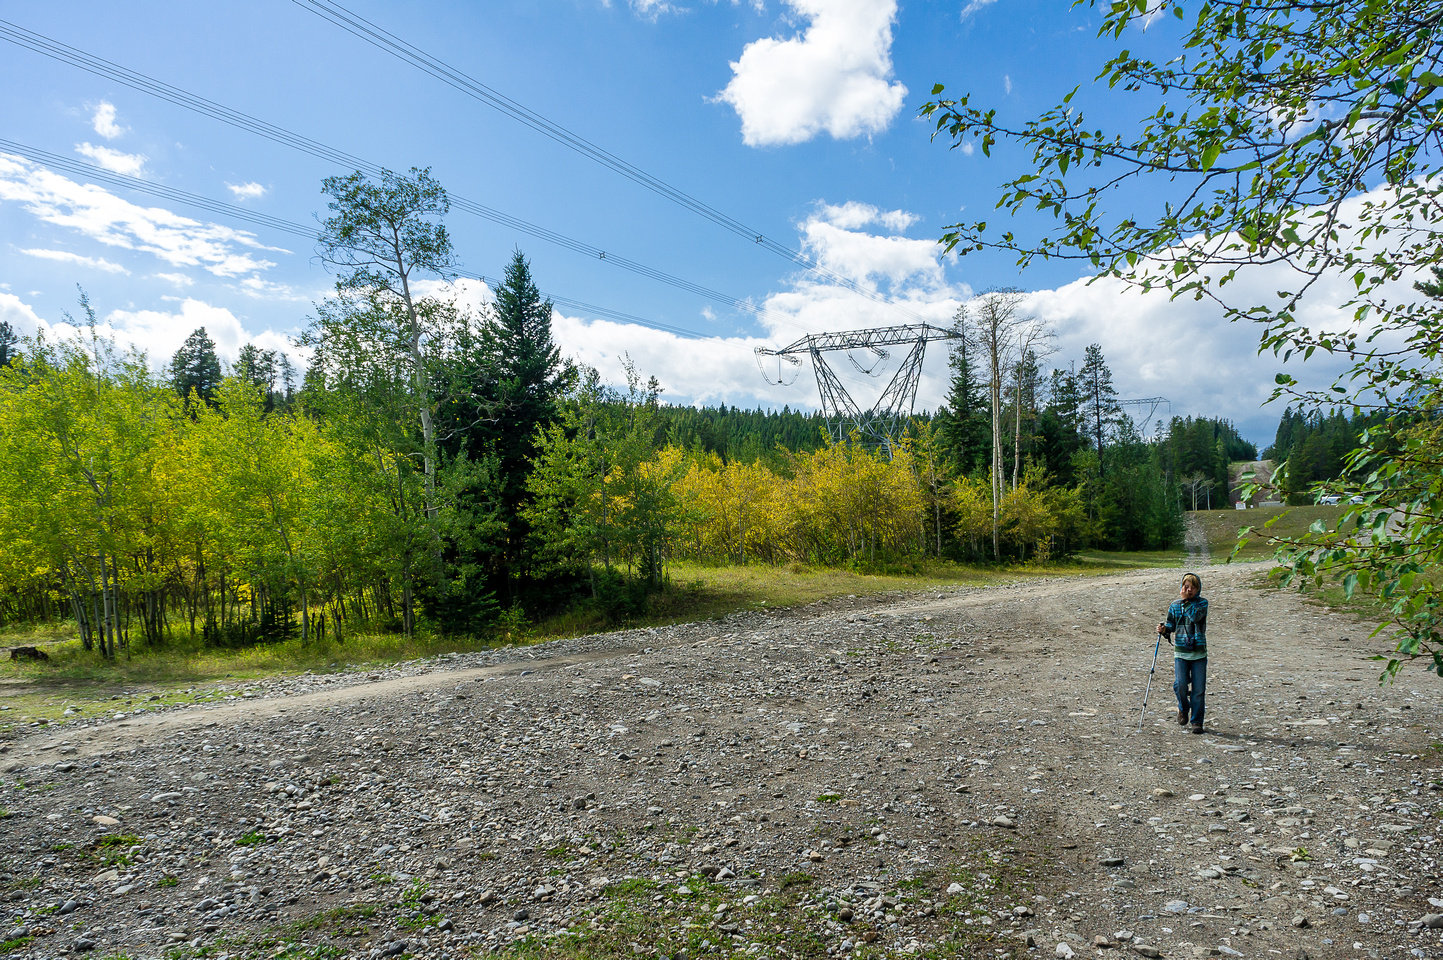 After parking on the south end of the open camping area, simply walk down the logging road heading east.